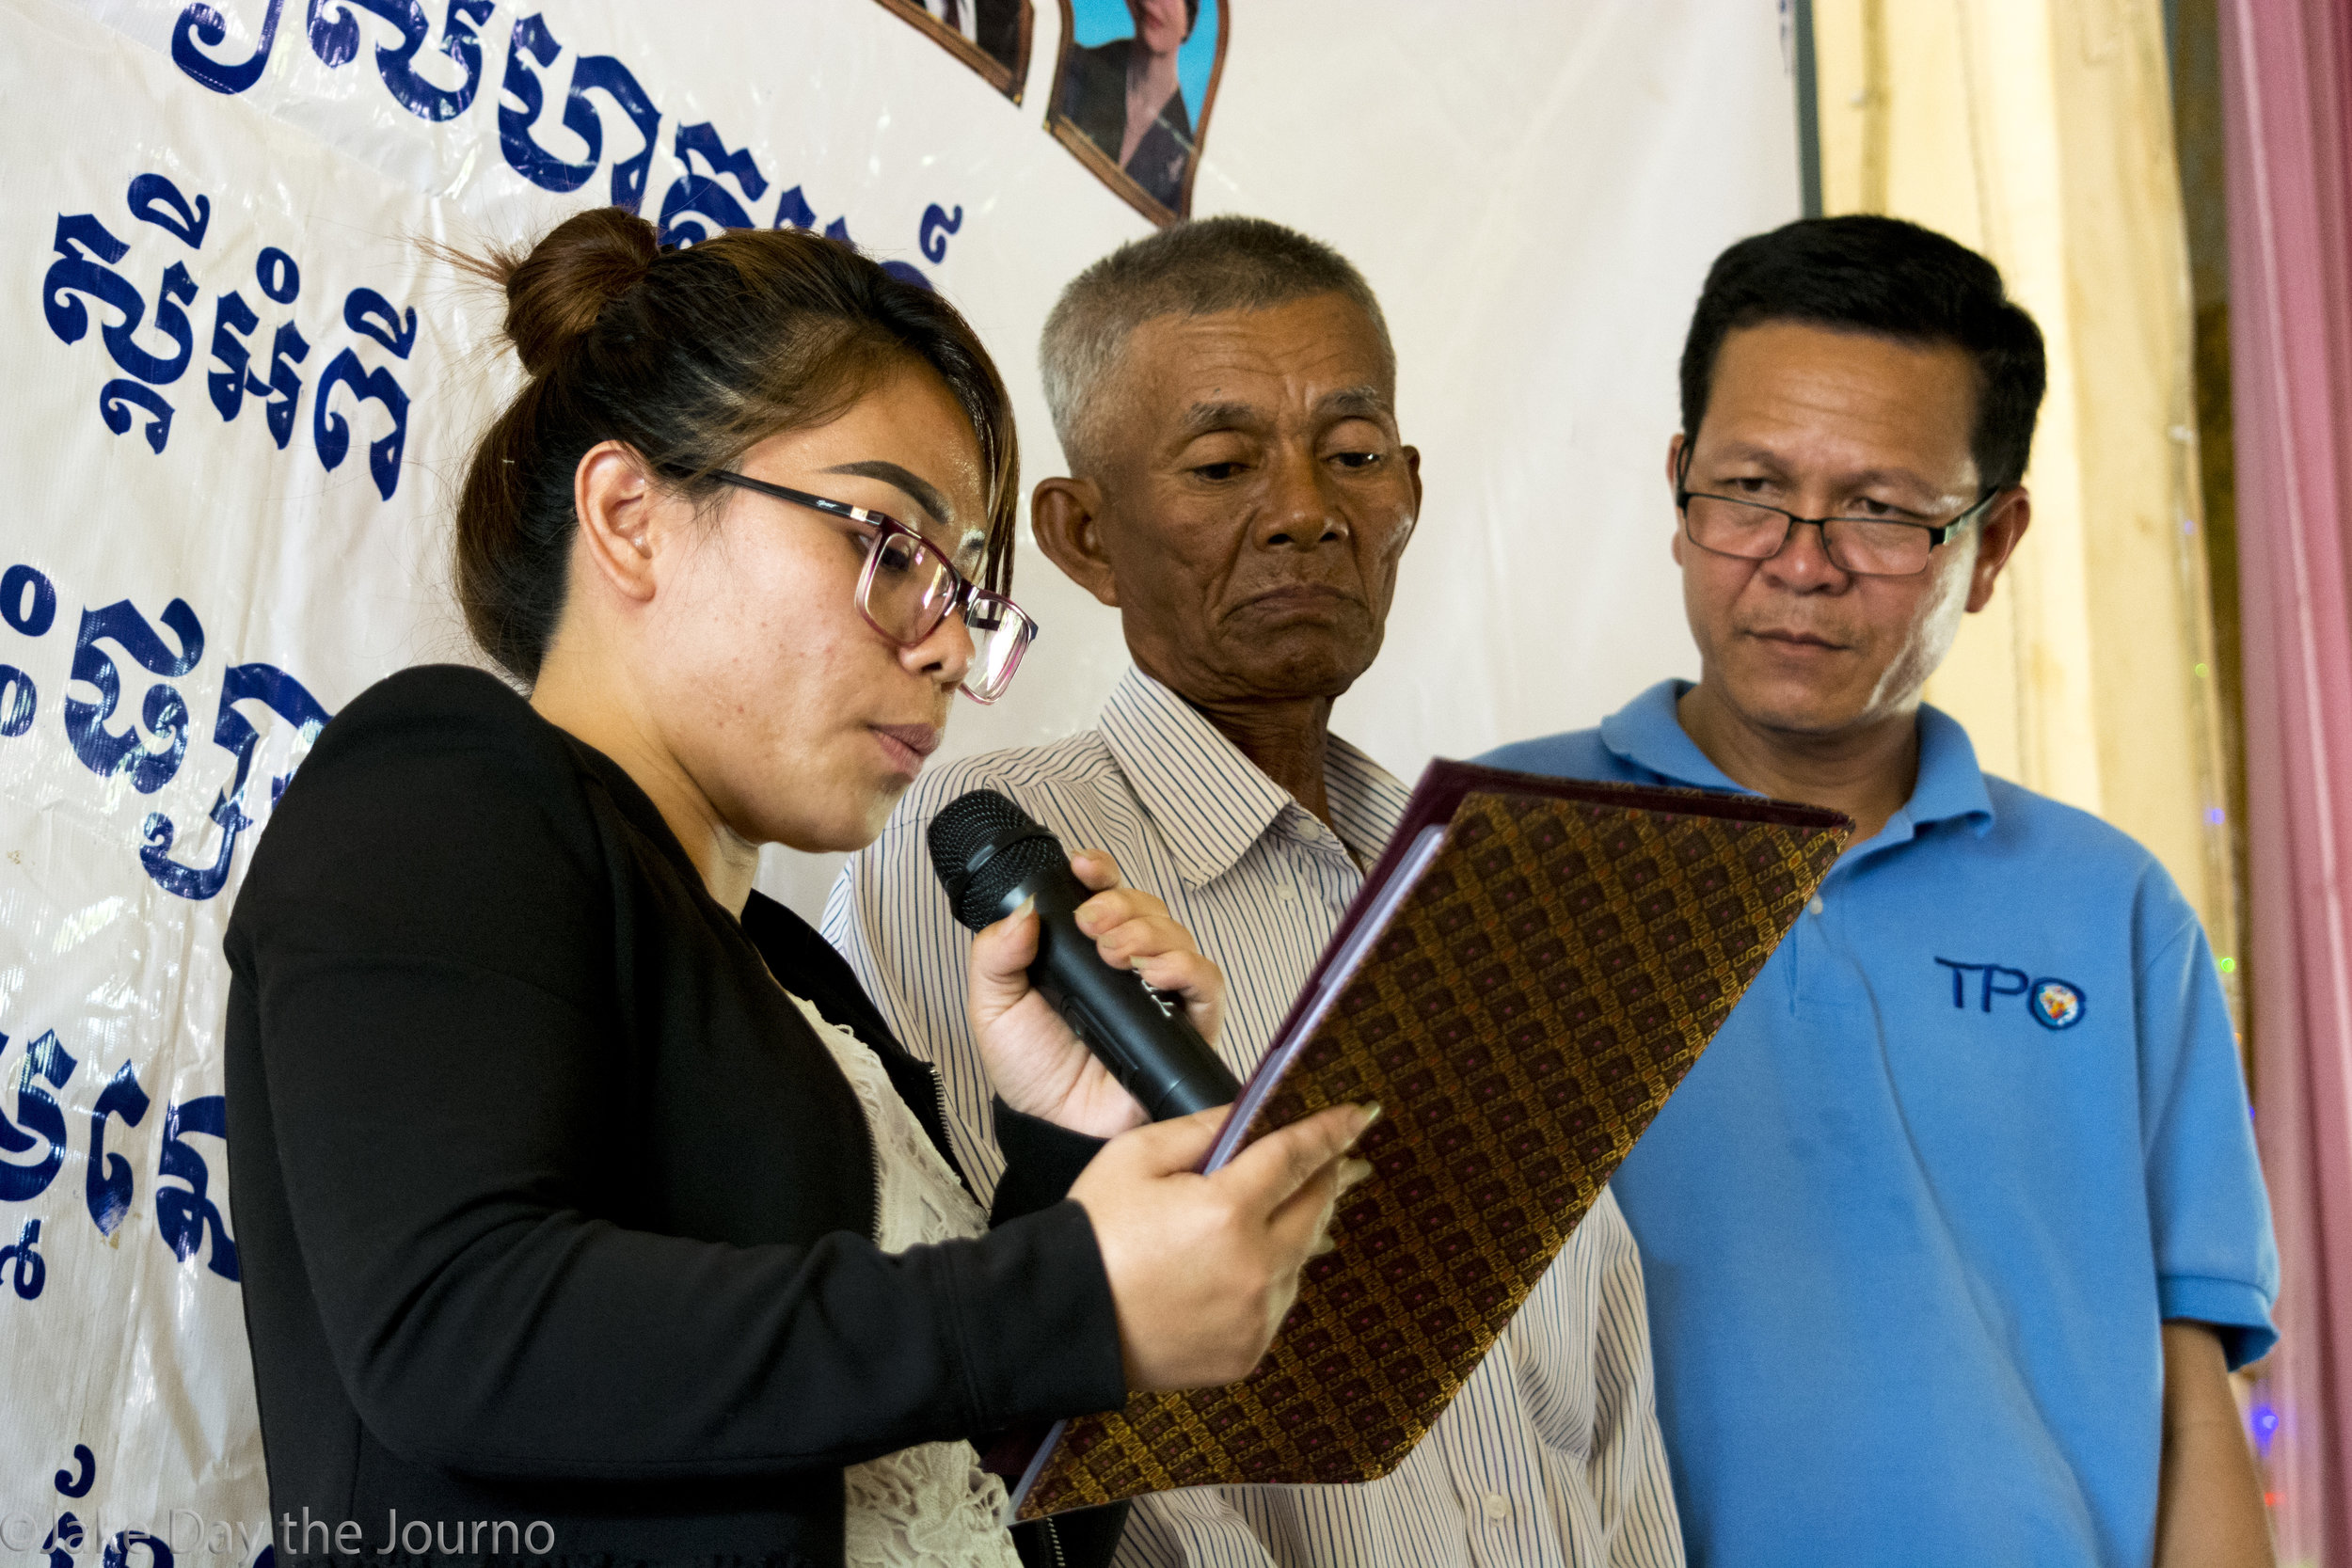 Counselors Sonary Chor and Sang Seum surround Klav Kleum, 65, for support during a testimonial ceremony organised by the Transcultural Psychosocial Organisation for the 'Healing and Reconciliation for Victims of Torture of Khmer Rouge Trauma' program at Ta Ann village, Ta Ann commune,Kralanh district, Siem Reap province on 18/01/18 by Jake Day. Sonary Chor reads Klav Kleum's testimony to members of Ta Ann village while Sang Seum stands by to comfort Mr Kleum.